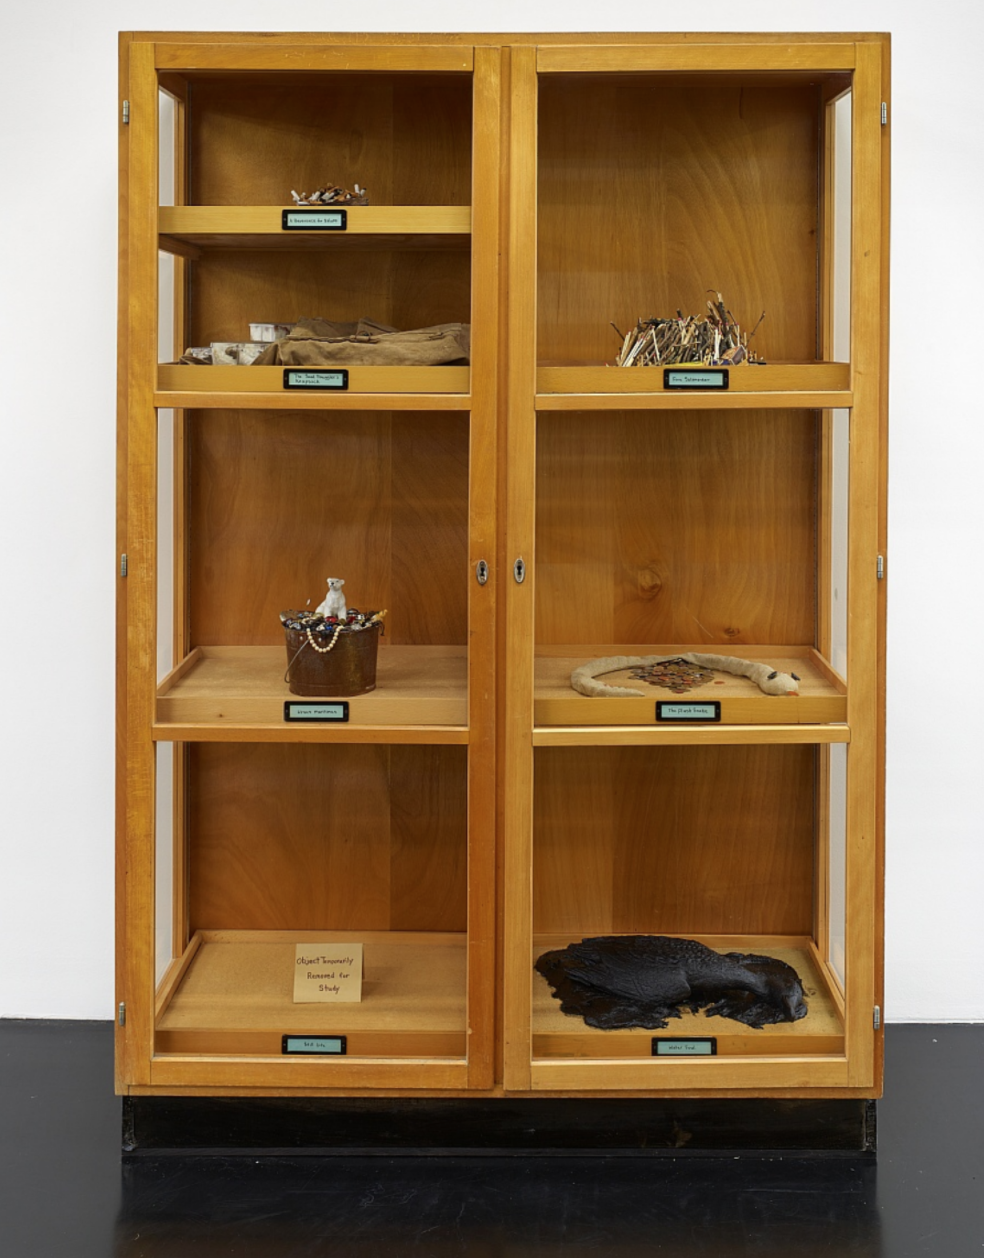 Mark Dion, Cupboard of Natural Wonders, 2019, Mixed Media, 190h x 130w x 48d cm